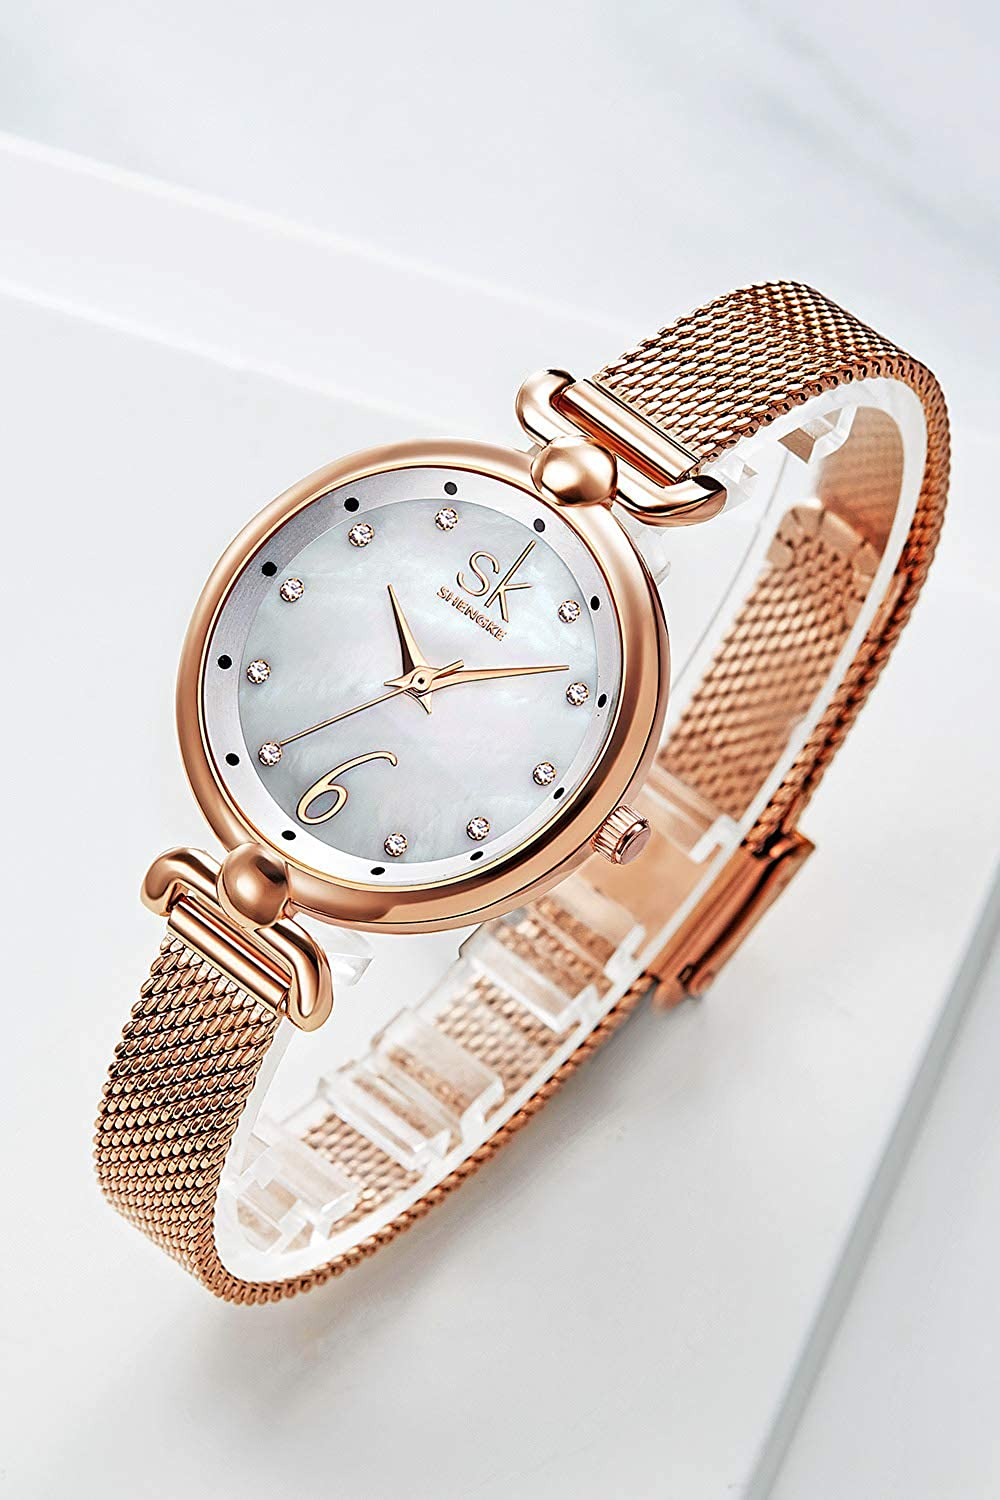 Amazon.com: SHENGKE Creative Simplicity Women Watch Mesh Band Elegant Women Watches Ladies Business Wristwatch (K0002-Rosegold-Mesh Band): Watches